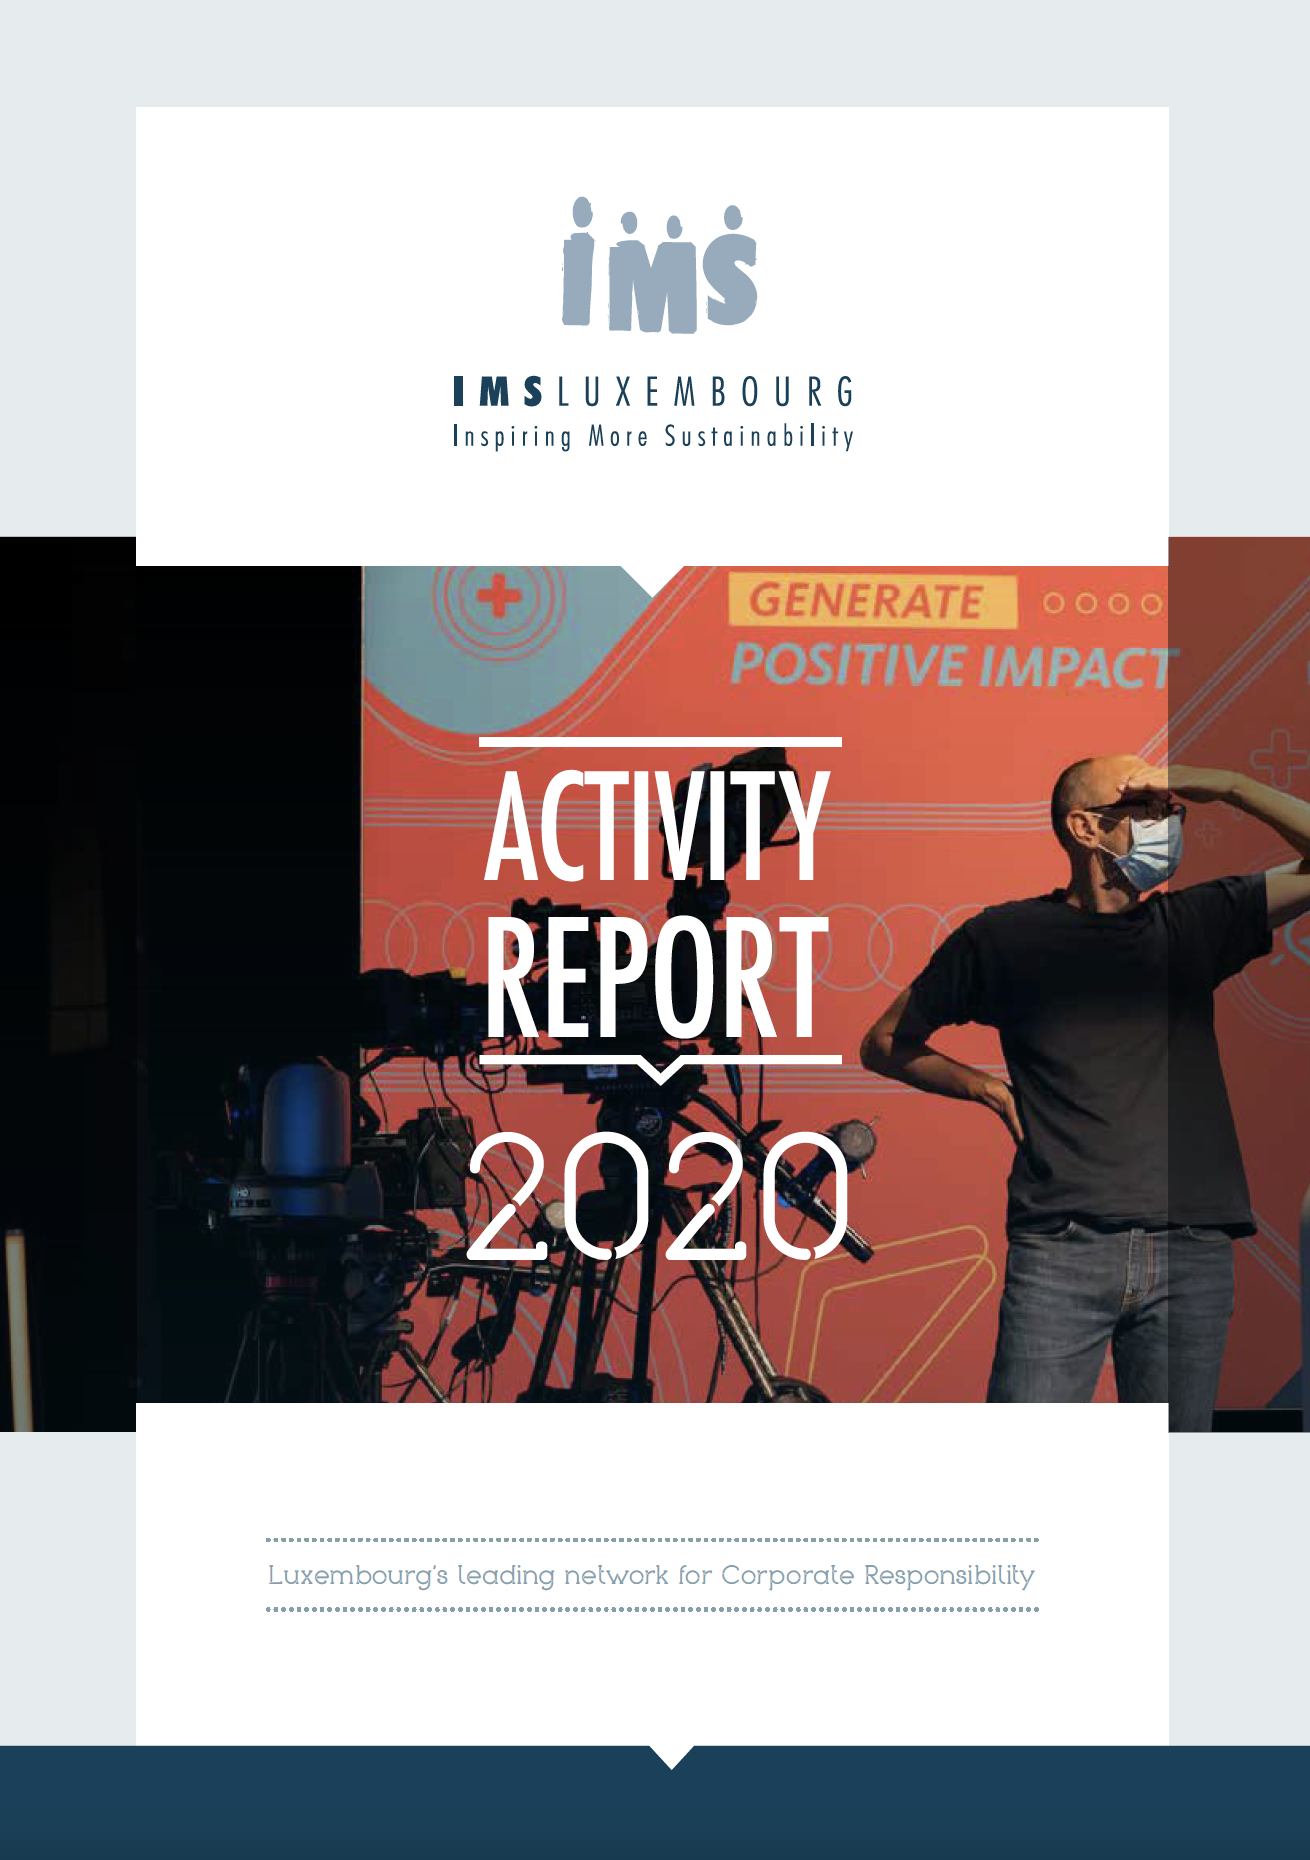 IMS Luxembourg Activity Report 2020